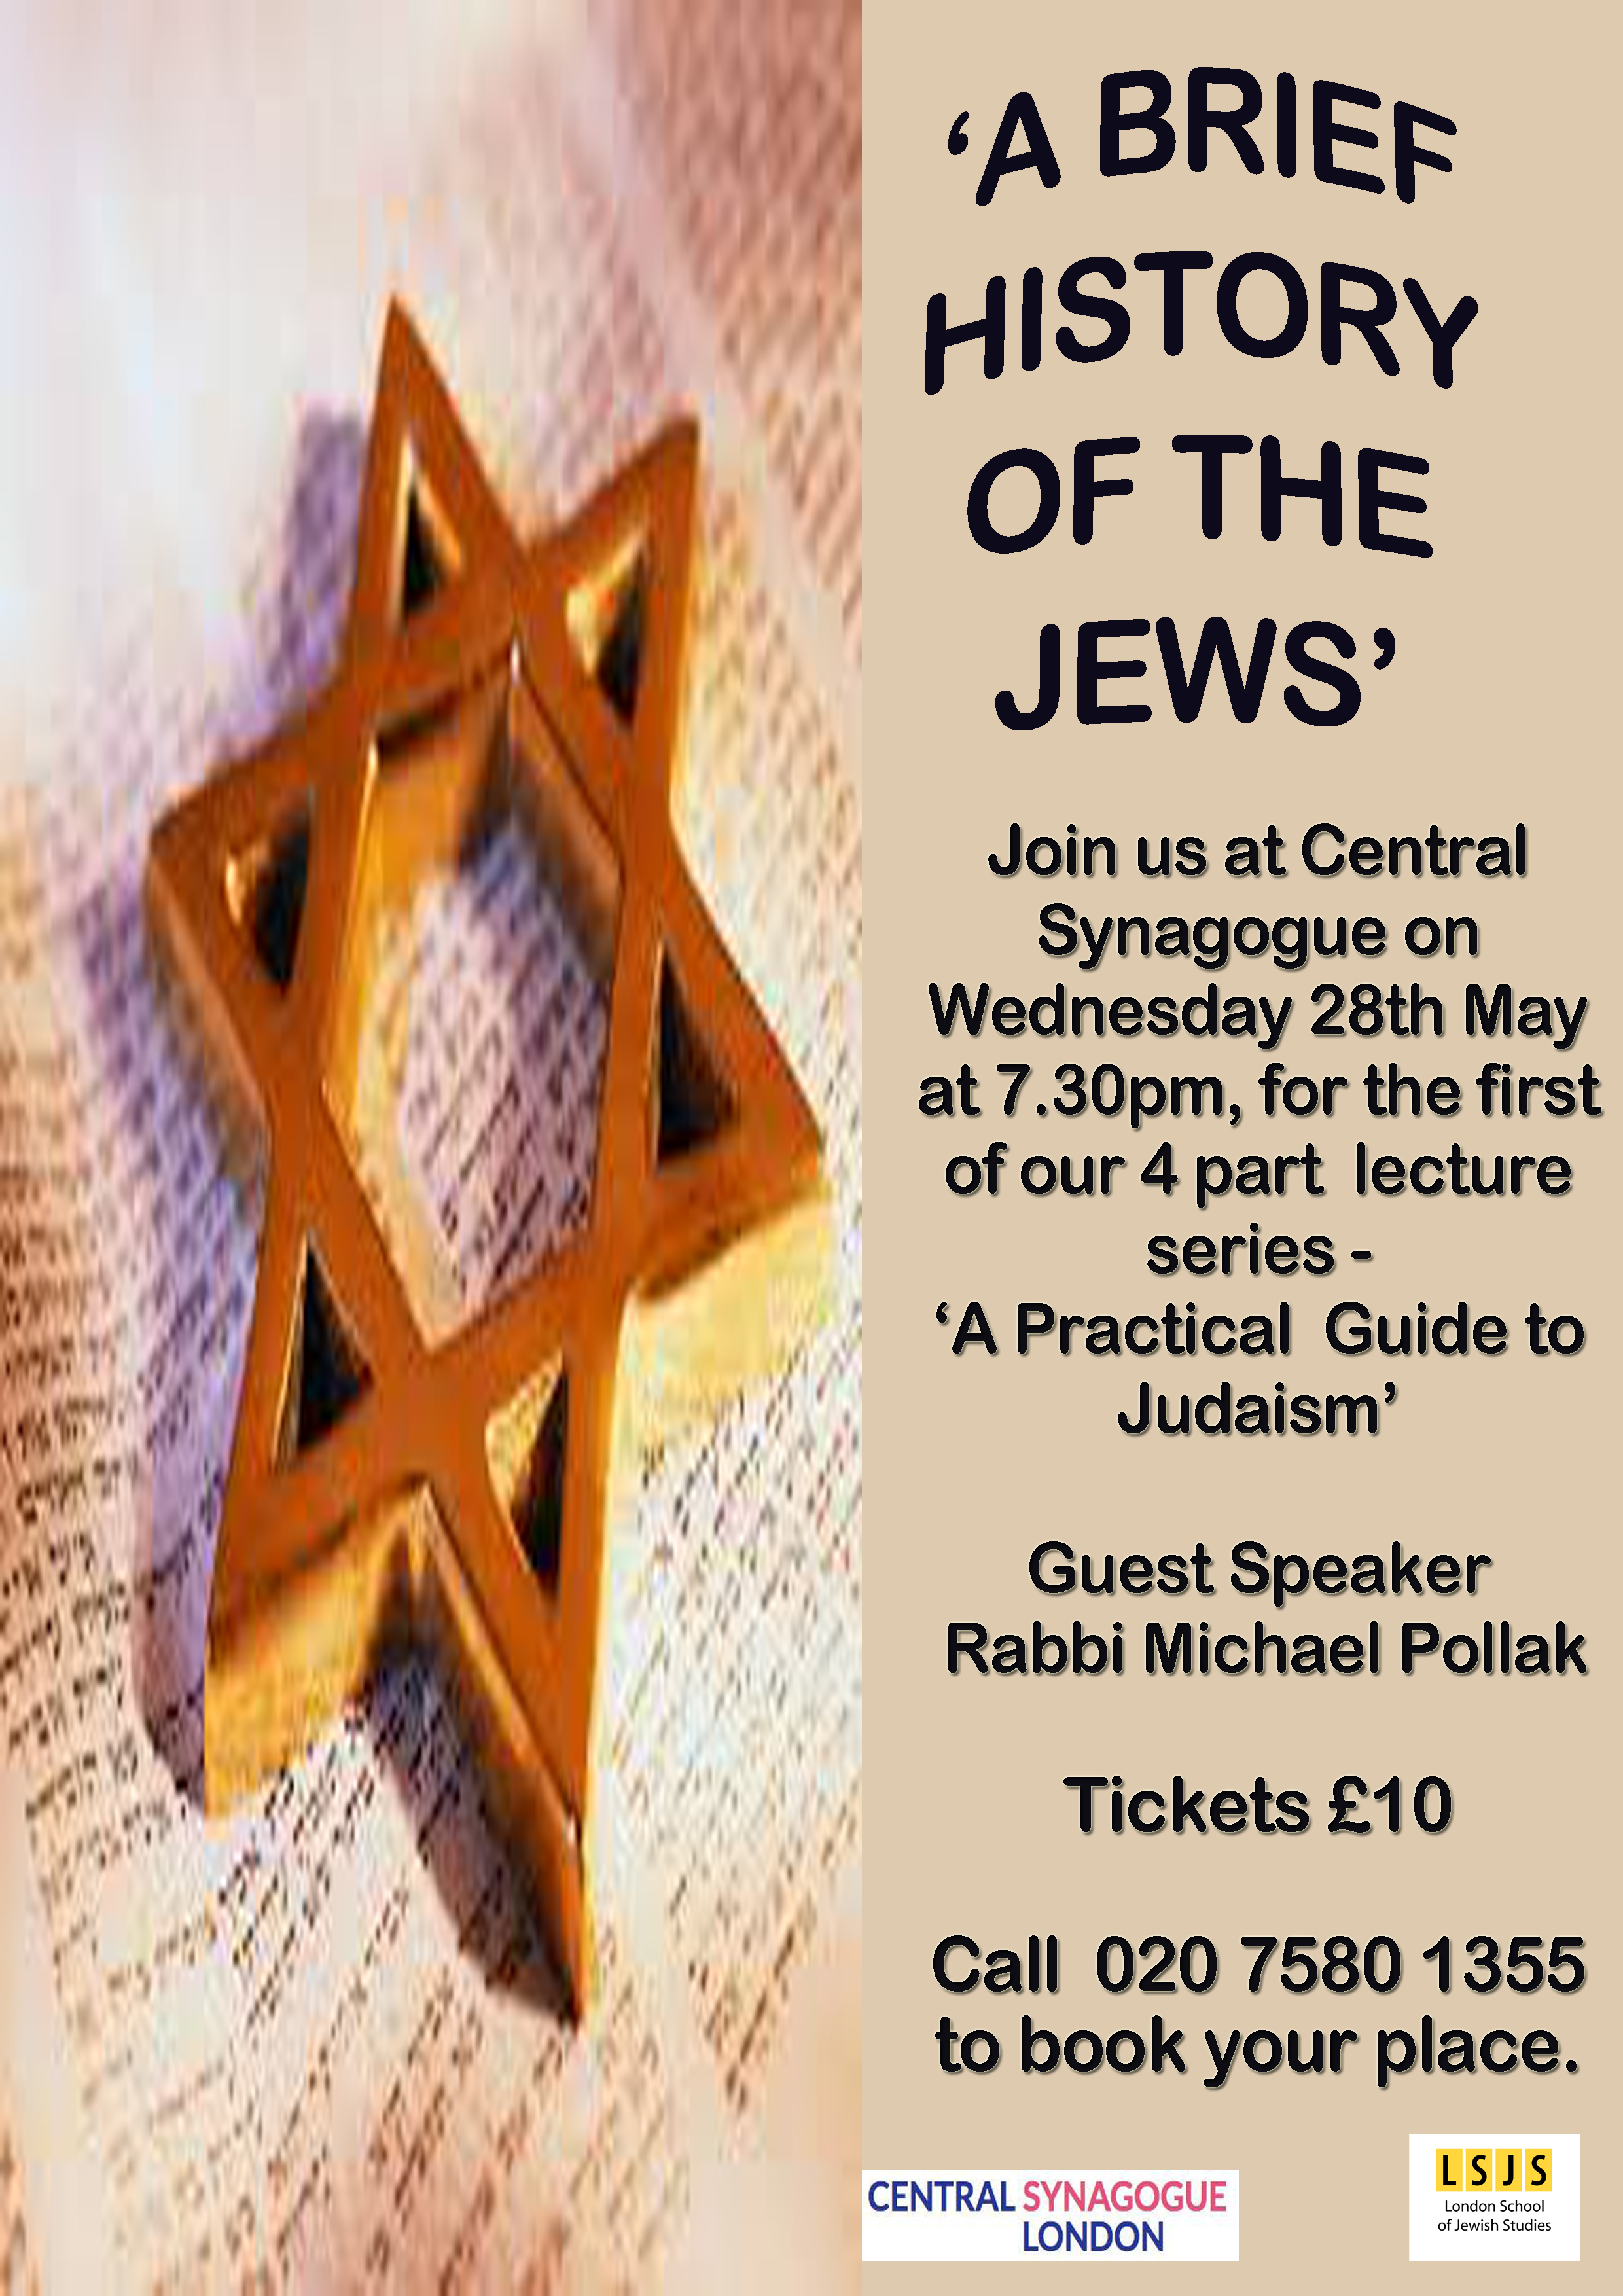 A brief history of the Jews flyer 2 copy